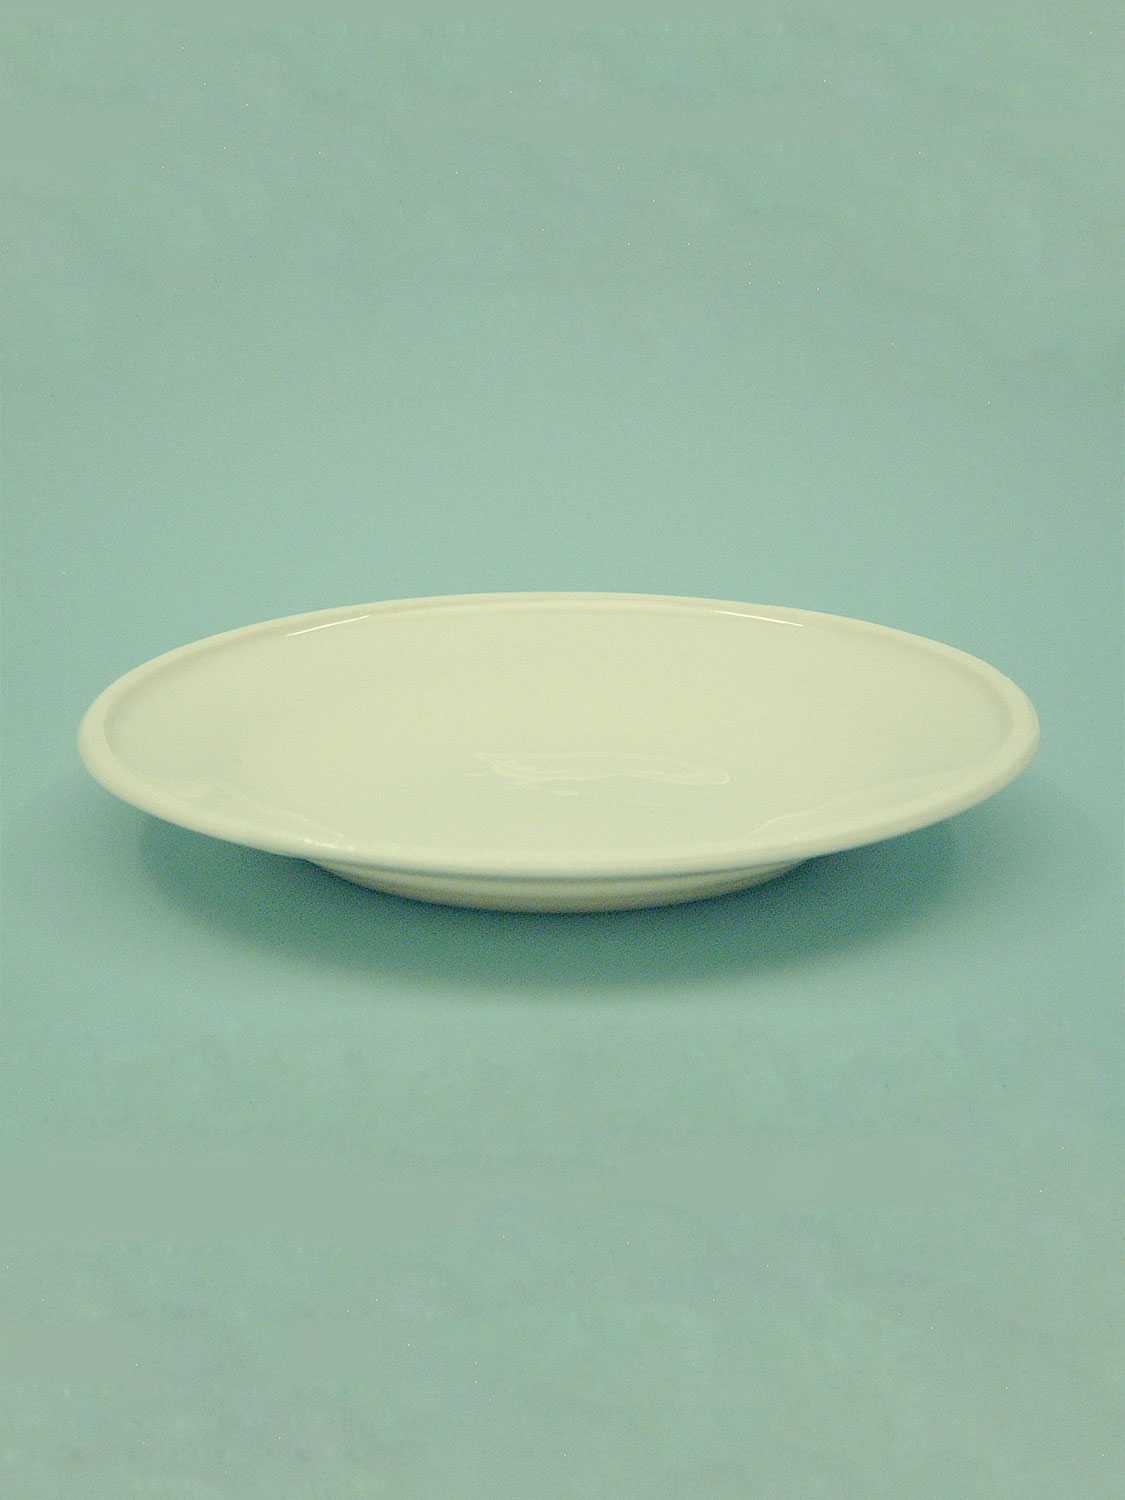 Breakaway plate or dish for the breakfast table made of sugar glass. 0200 - Table plate, 3 cm x ø 23 cm.